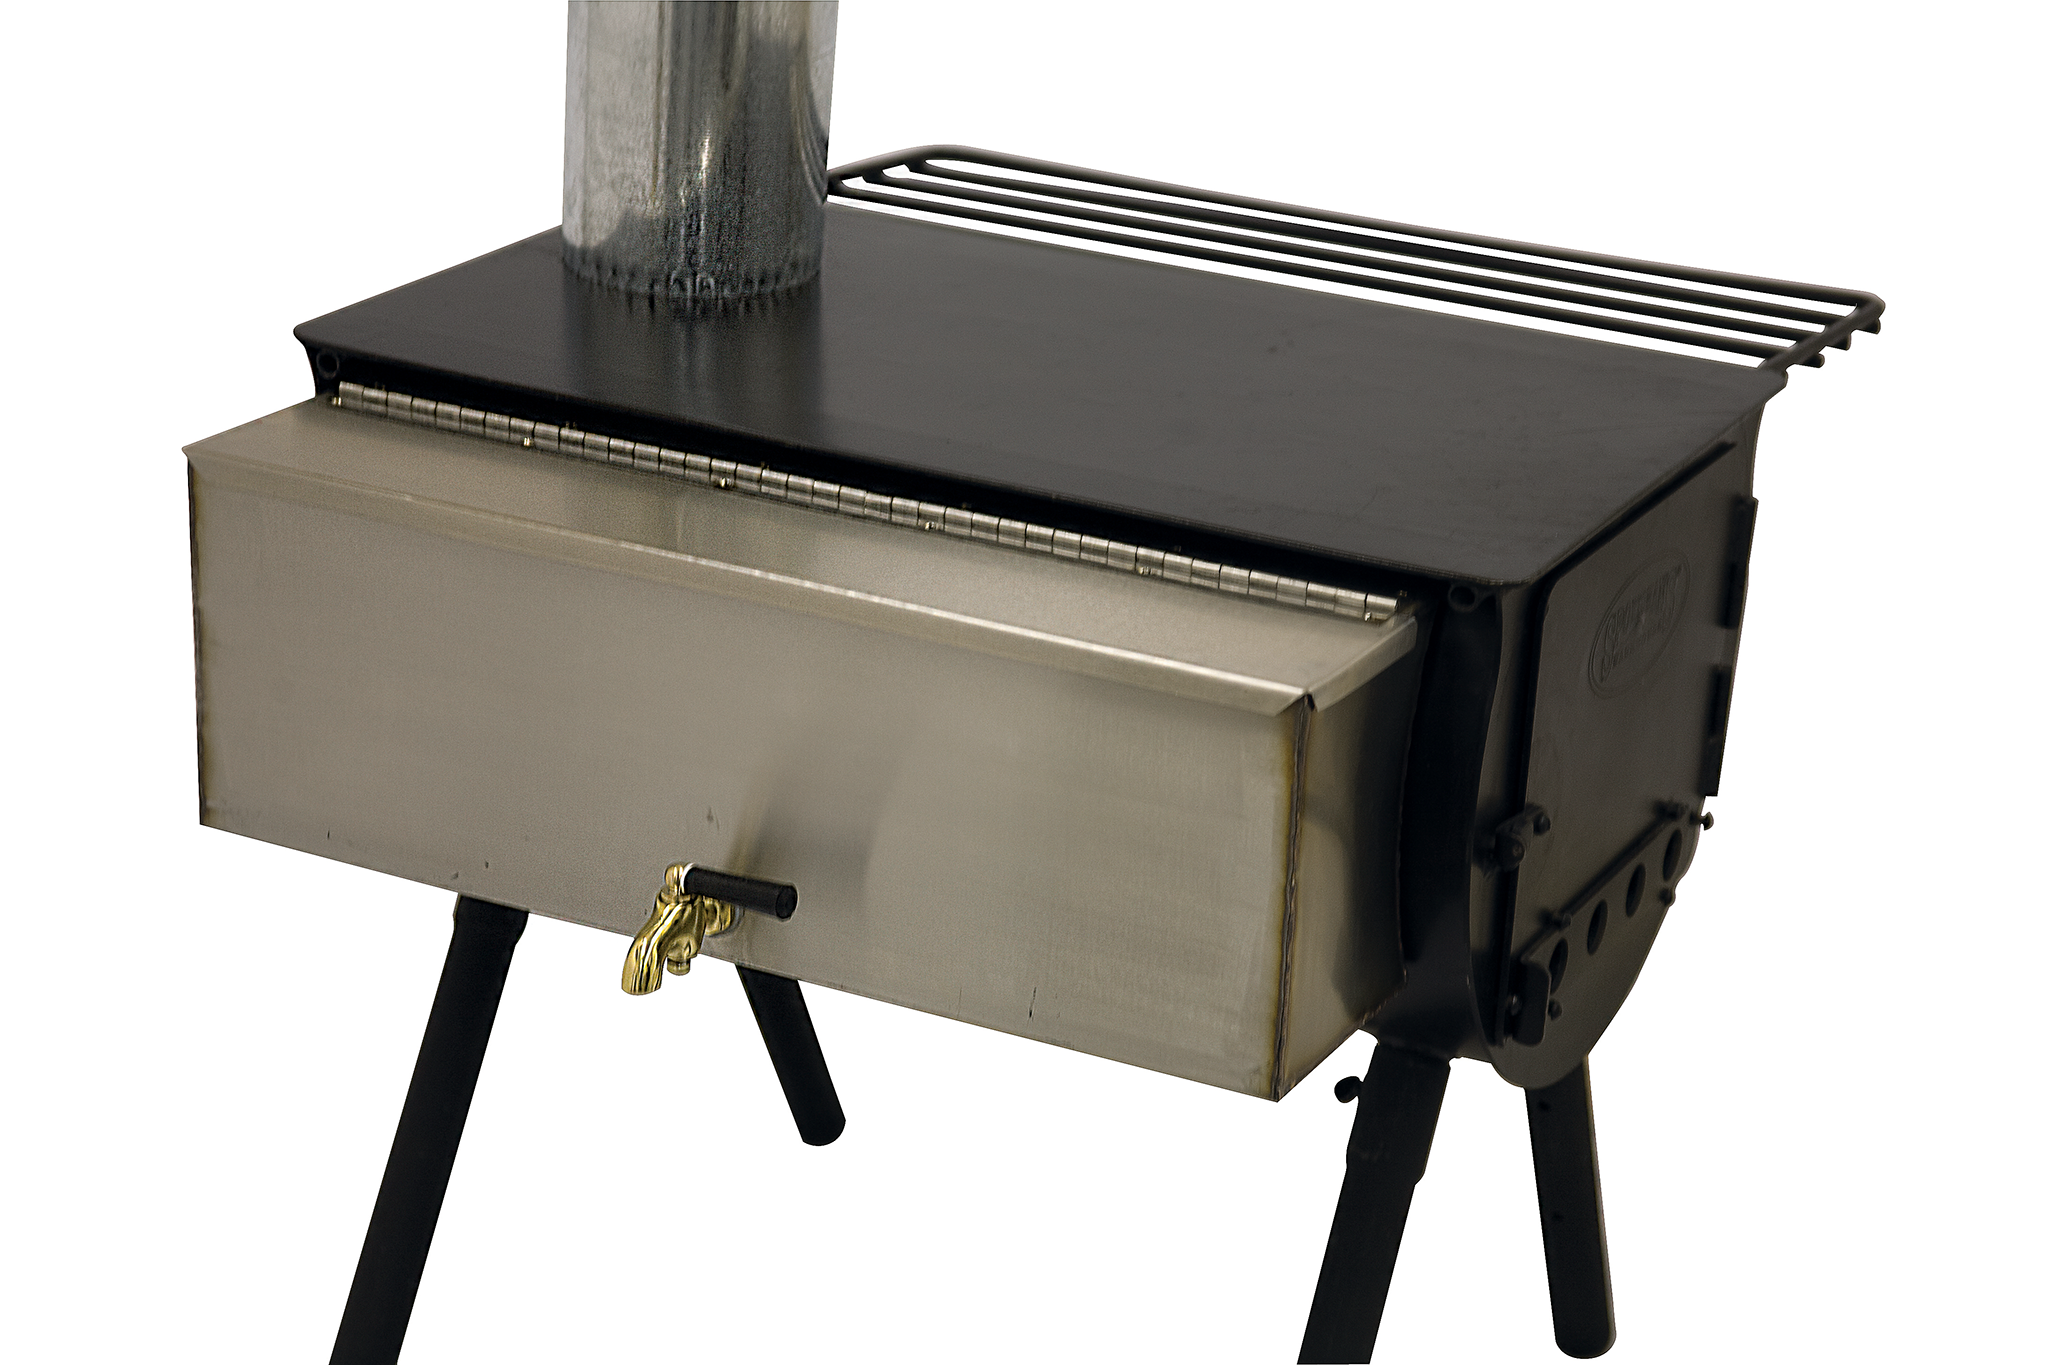 Stove for bath with tank: photo, video review 11